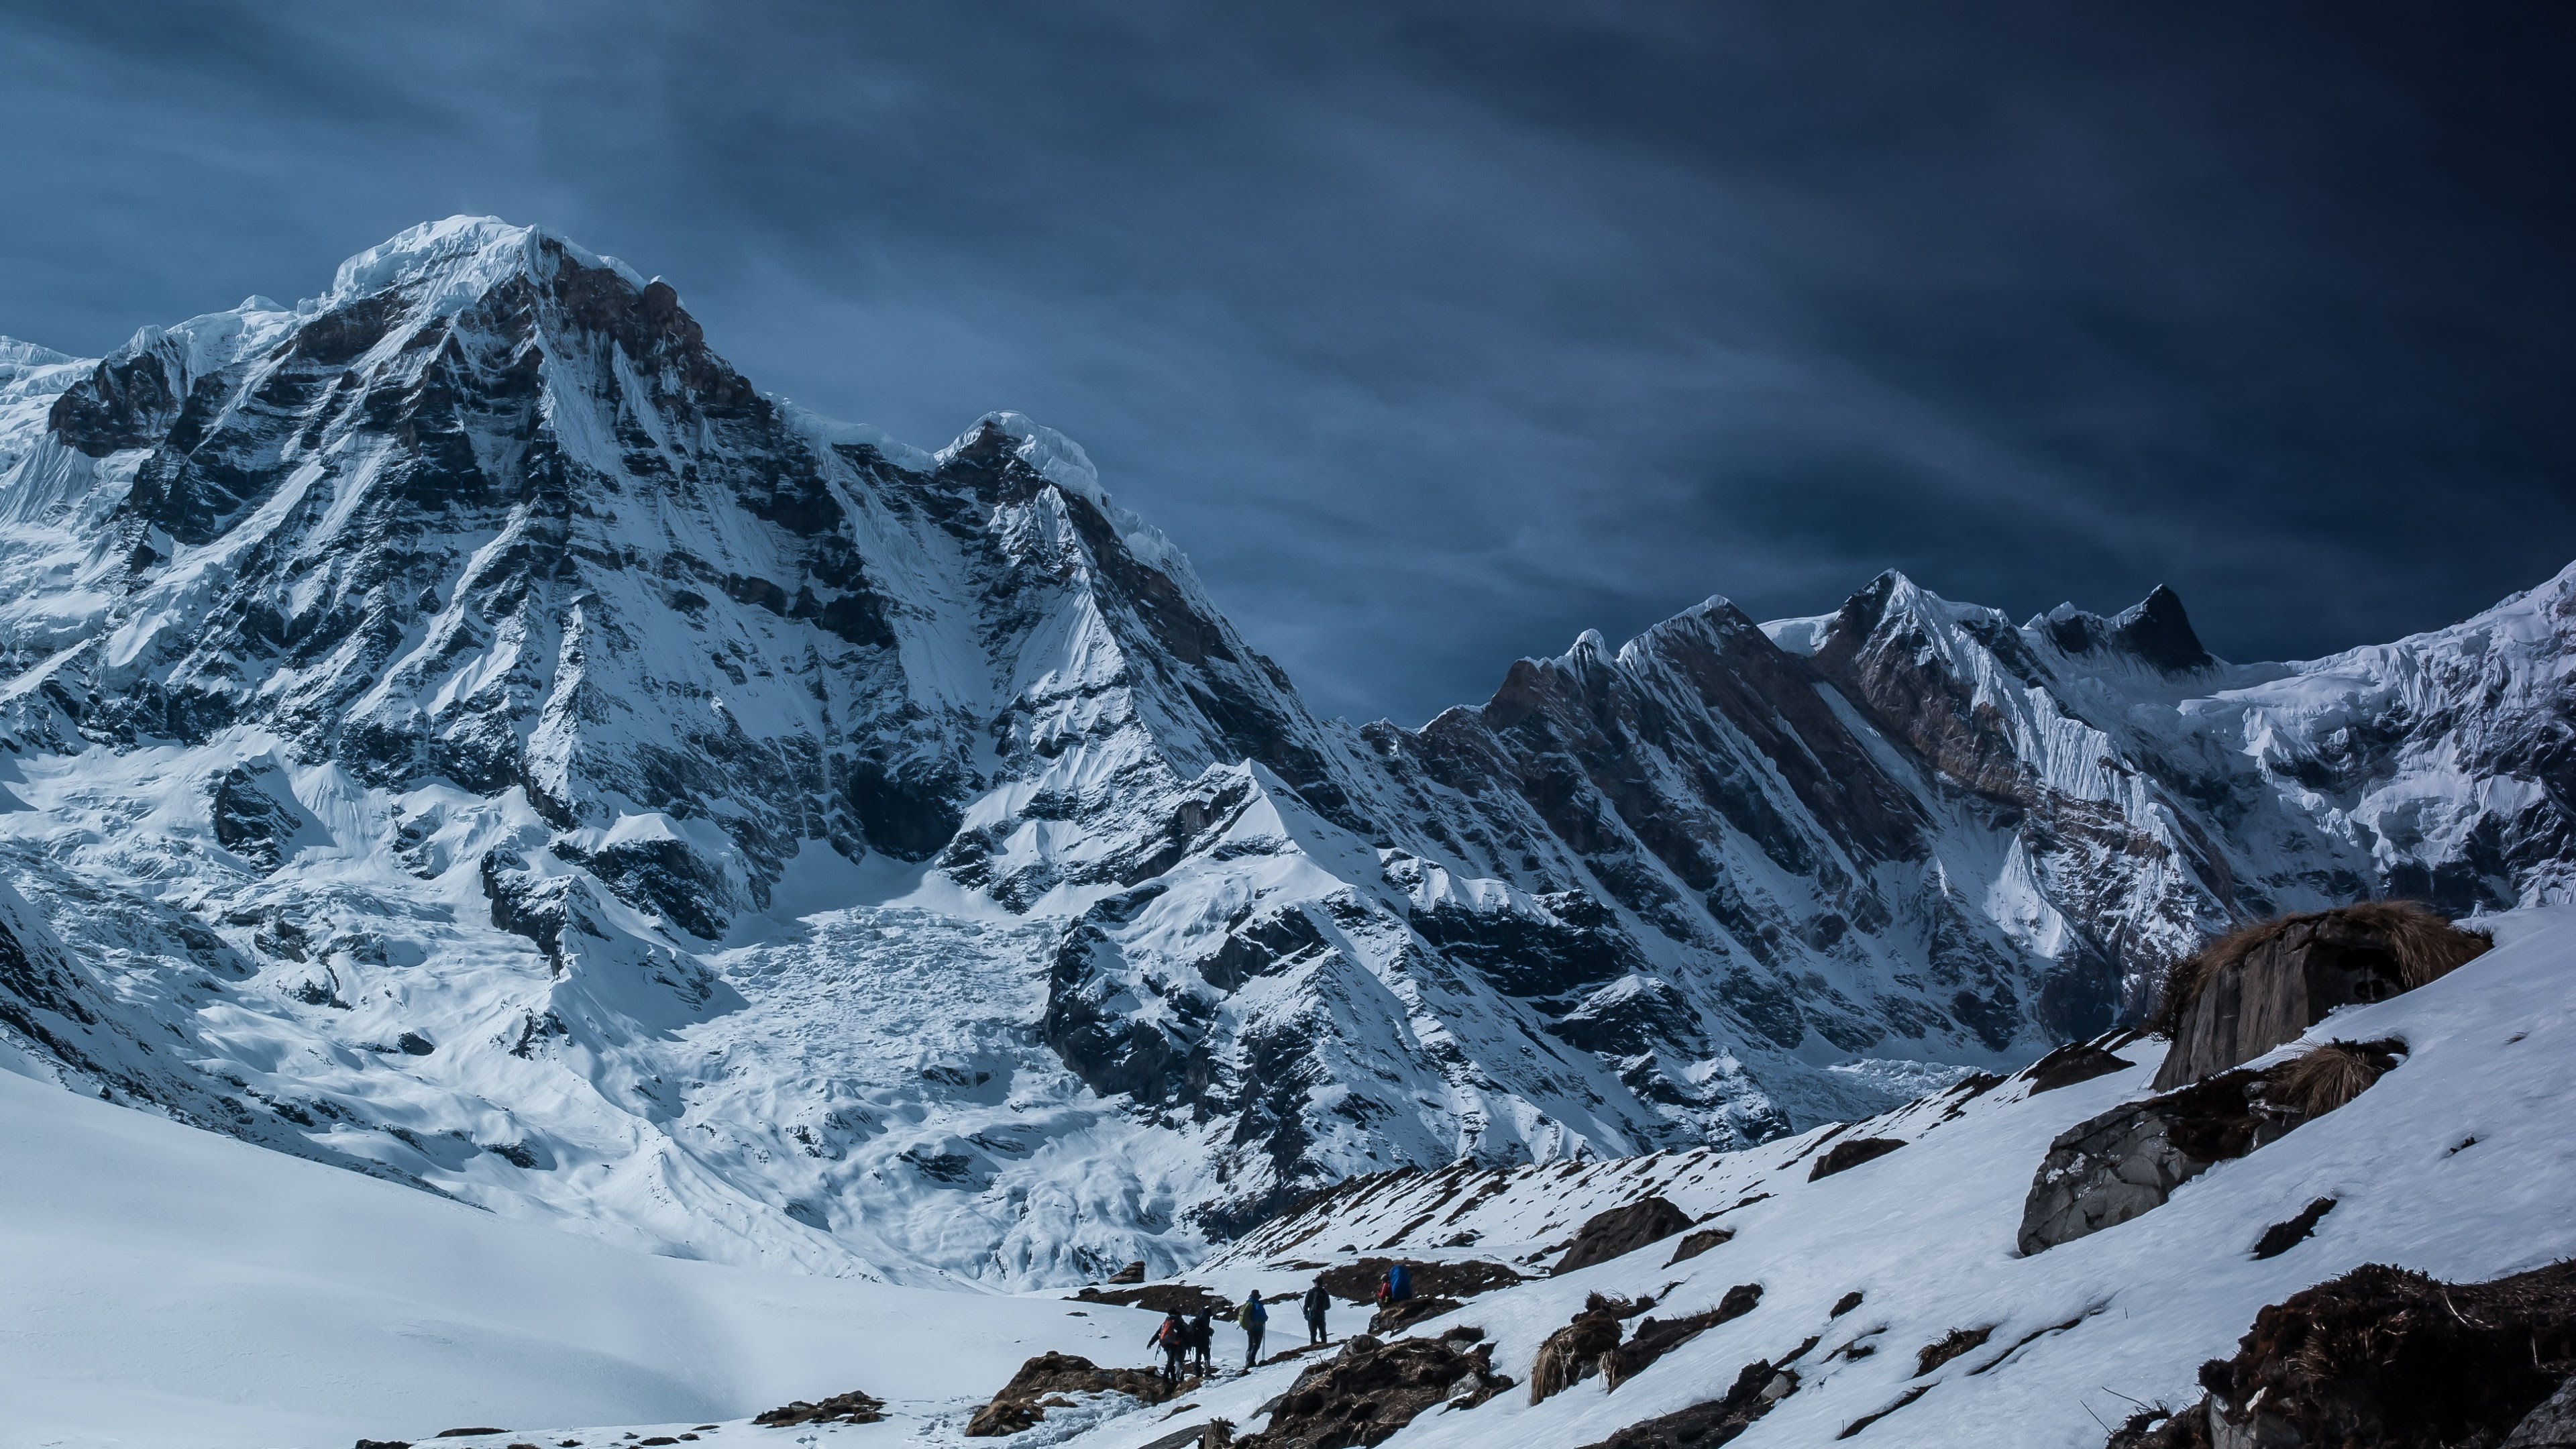 Mountain Peak Alp And Range Hd 4k Wallpaper And Background Images, Photos, Reviews